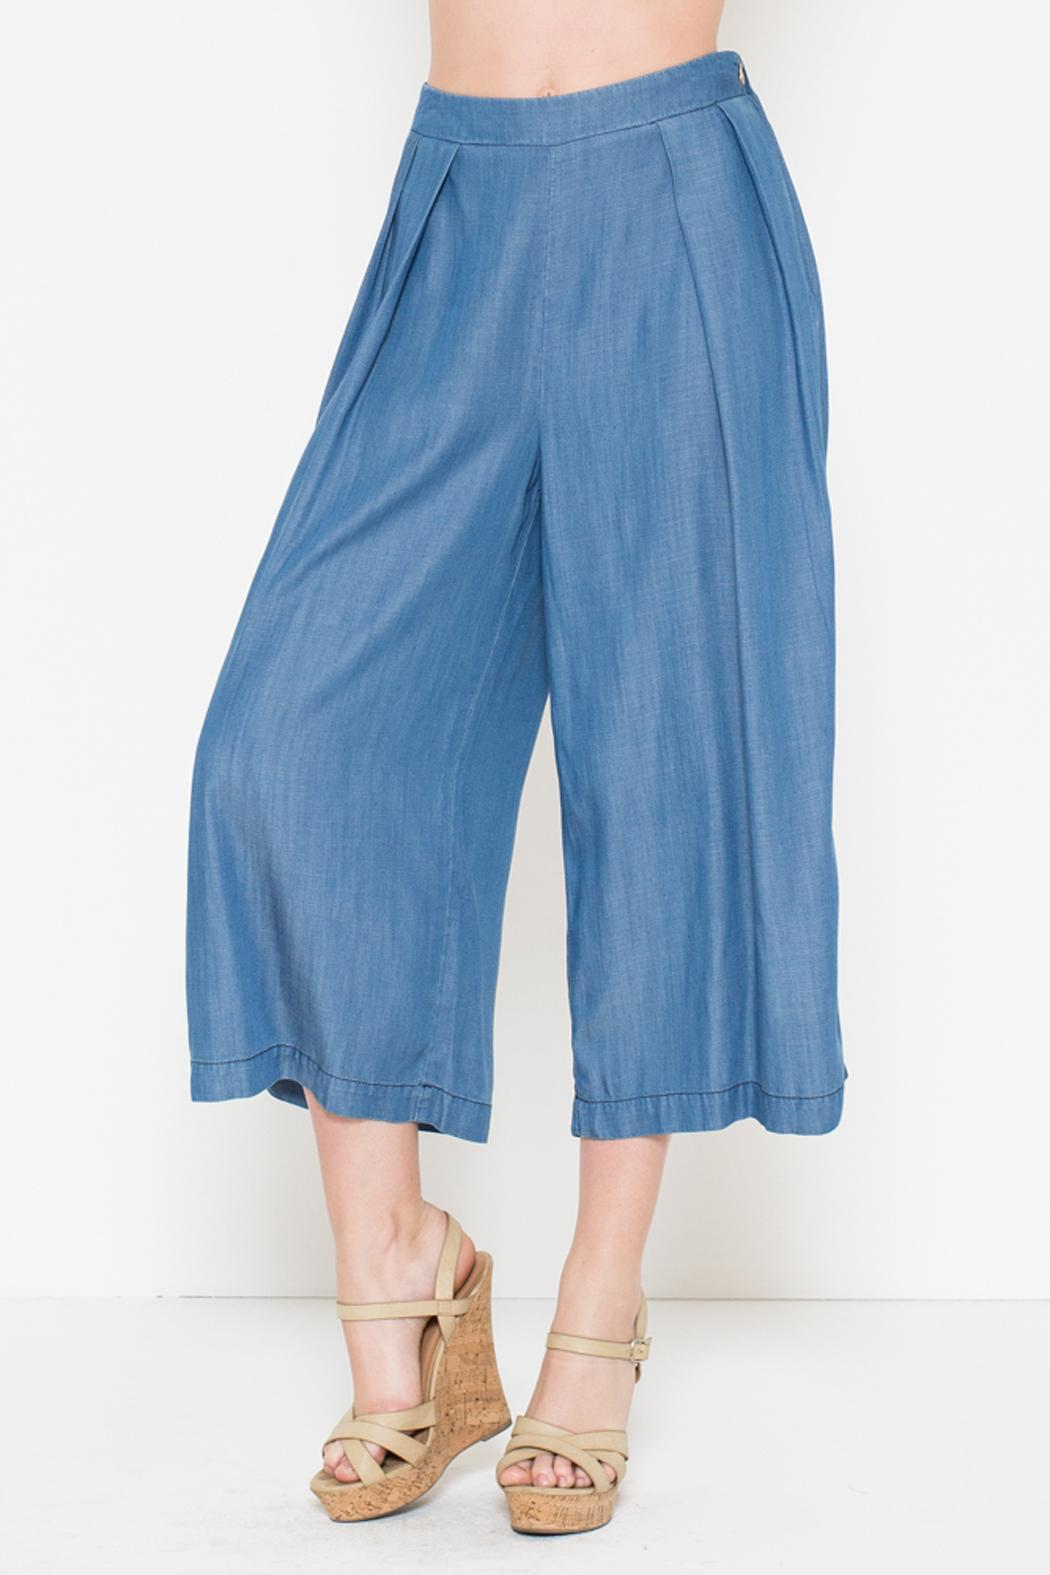 066dbceadee Laju Collection Tencel Culottes from Williamsburg by Fanaberie ...